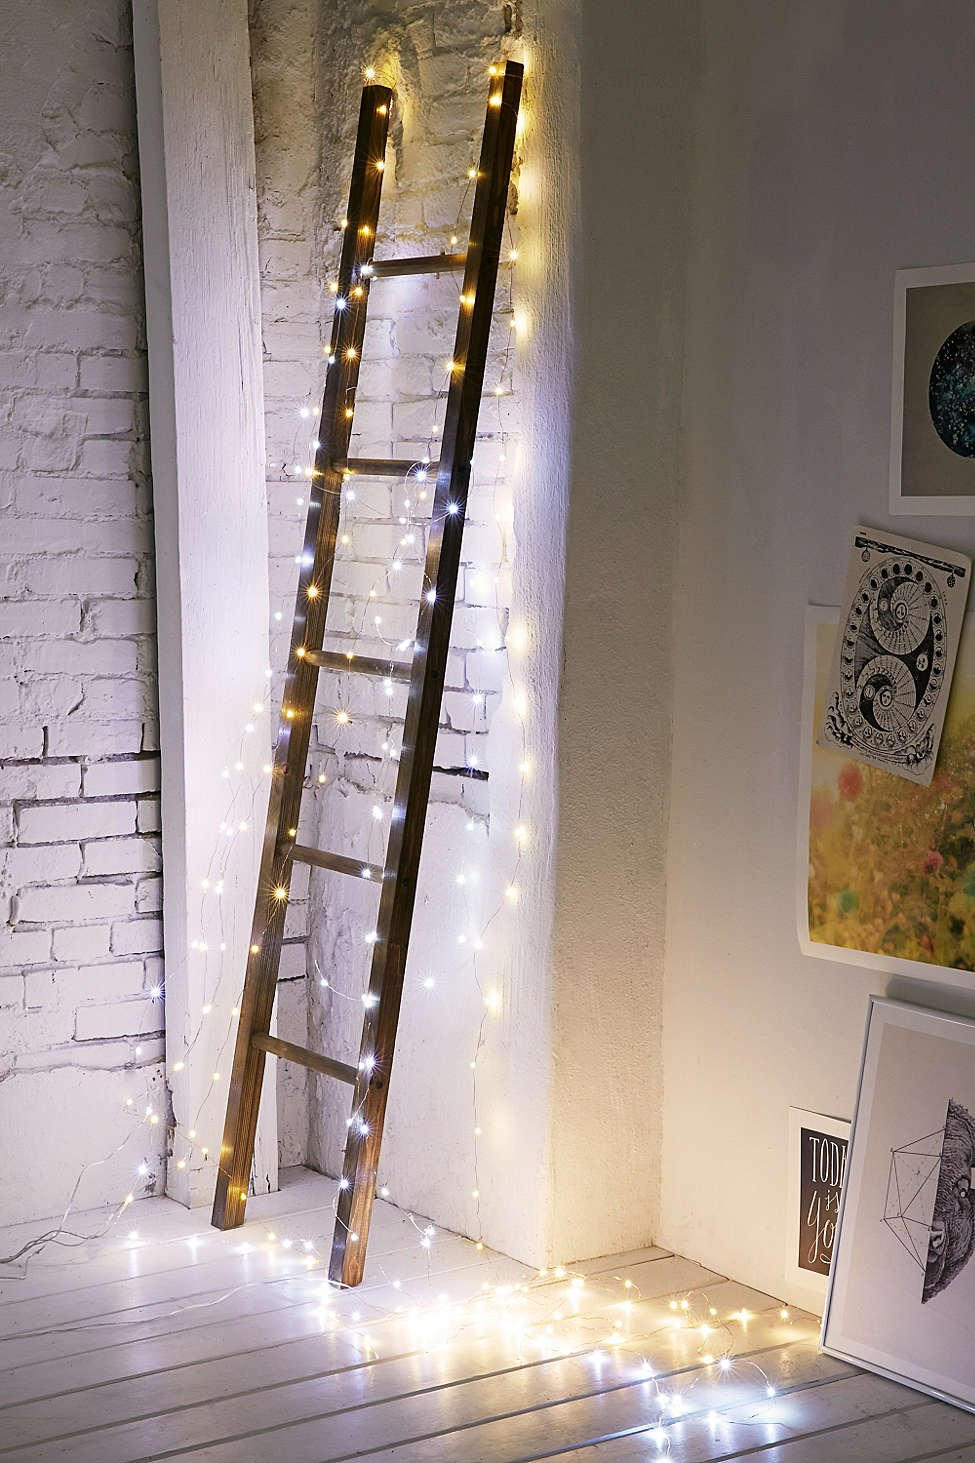 Make a decorative ladder Christmas-ready by encasing it in lights.